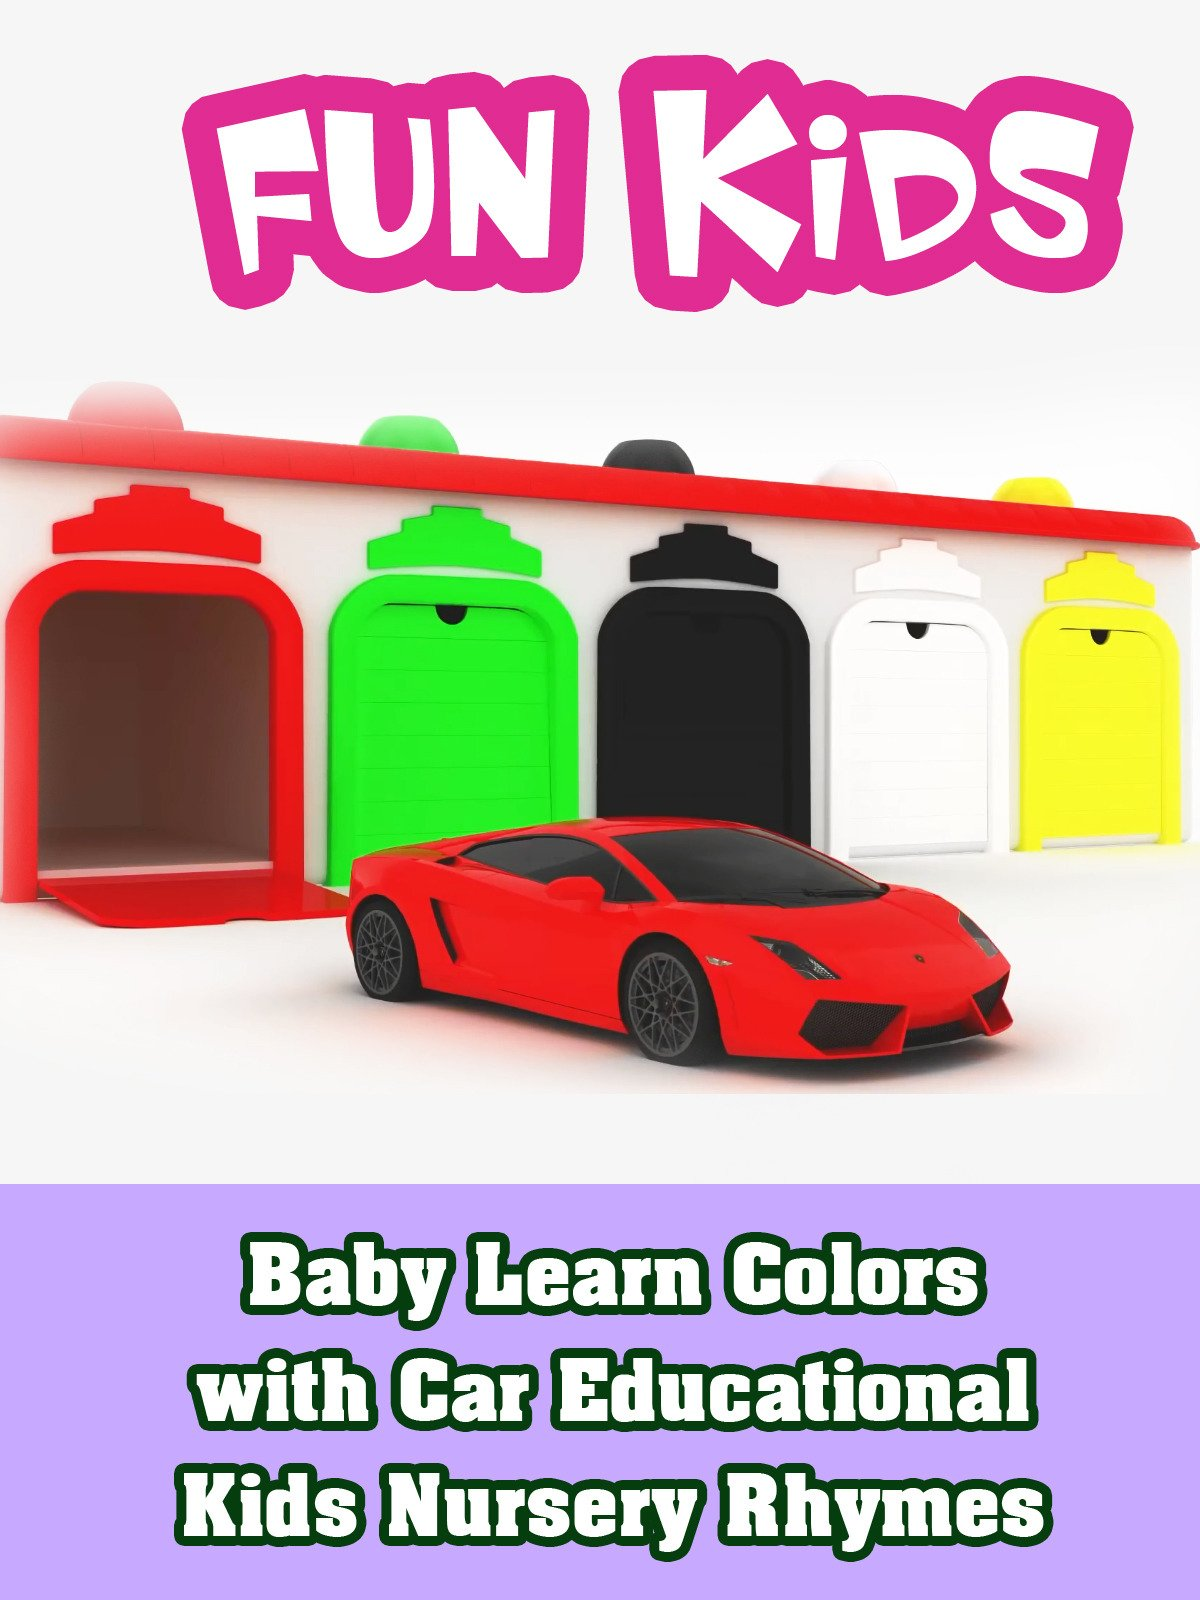 Baby Learn Colors with Car Educational Kids Nursery Rhymes